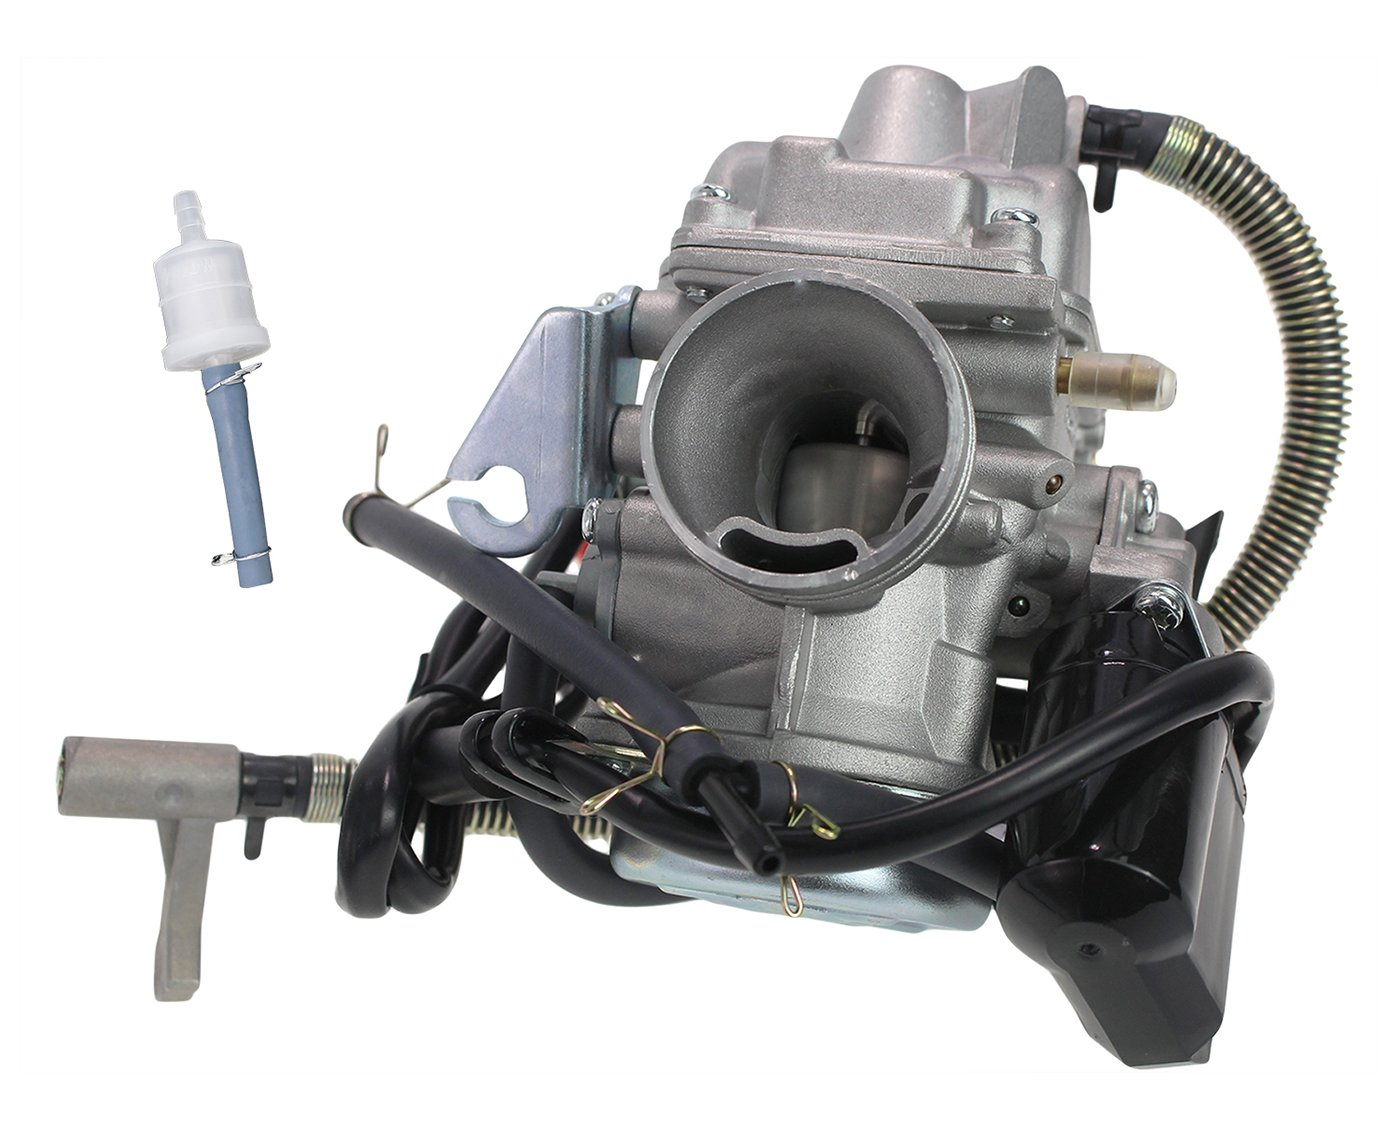 PD24J Carburetor fits GY6 150cc 125cc 4 Stroke Electric Choke Motorcycle  Scooter